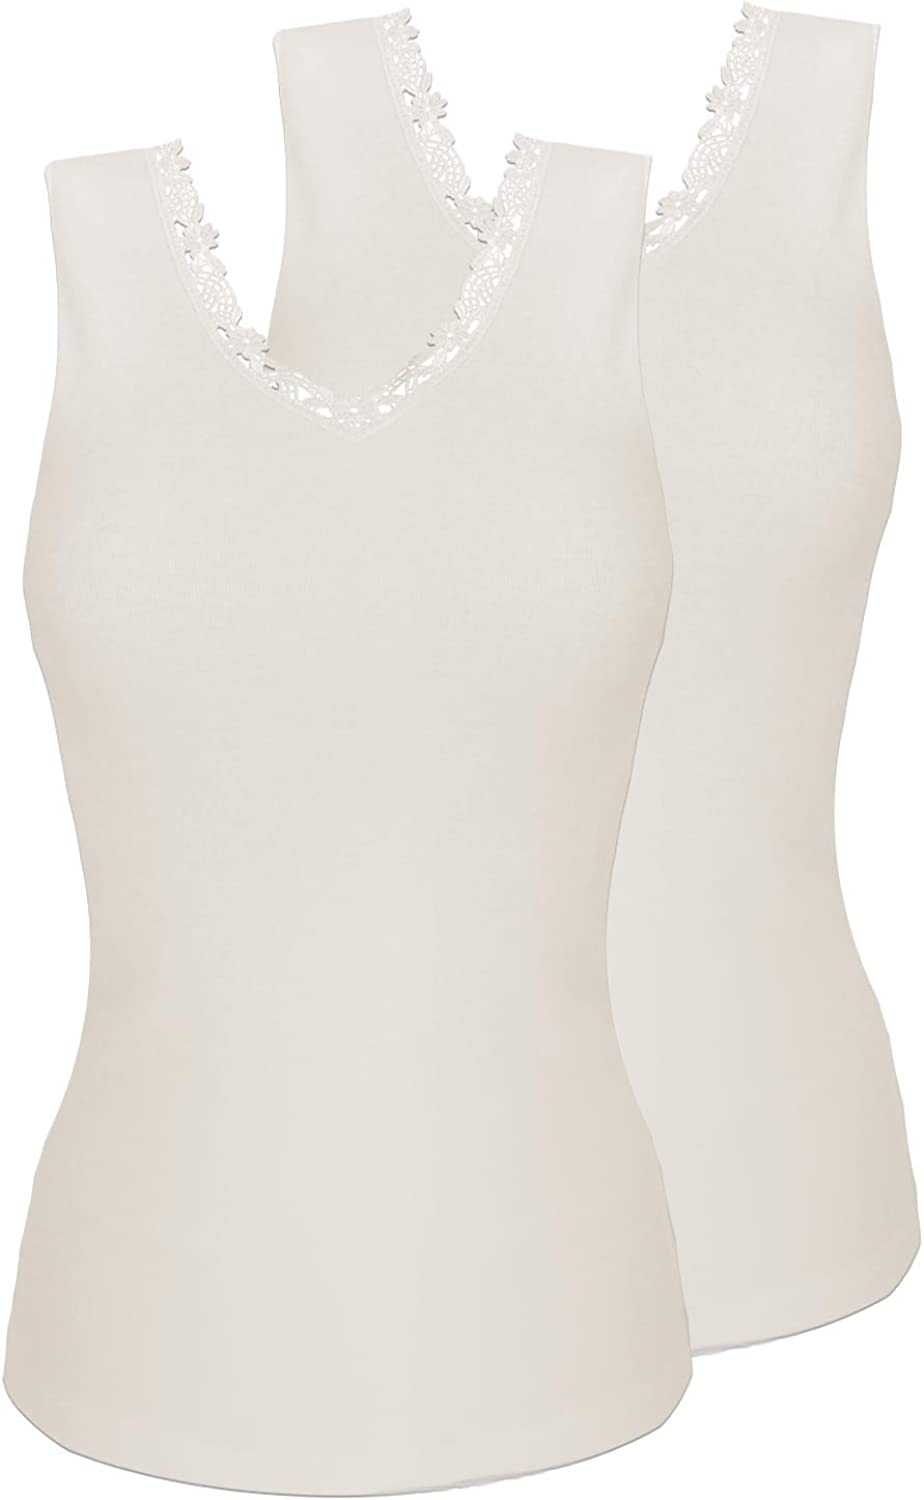 Sangora Pack of 2 Women's Thermal Camisole 8050910